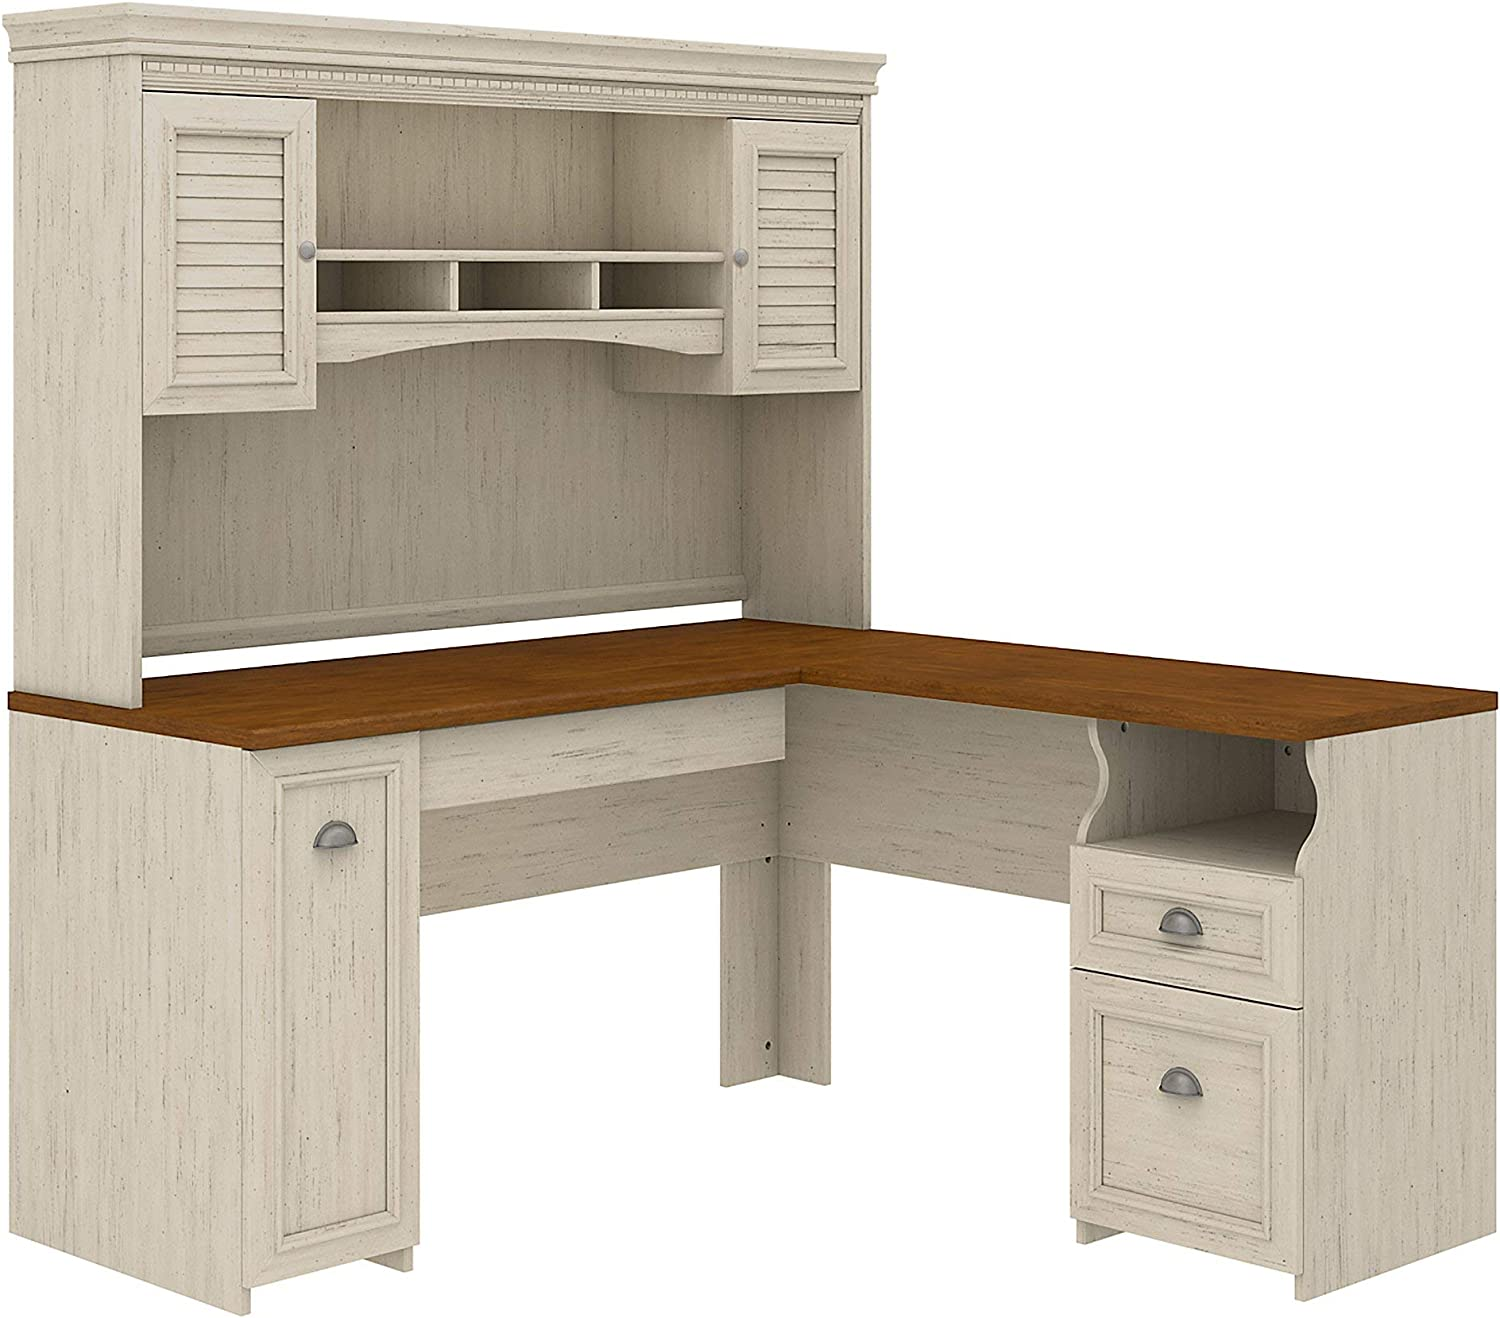 Bush Furniture Fairview L Shaped Some reservation Desk Whit with Hutch in Antique Mail order